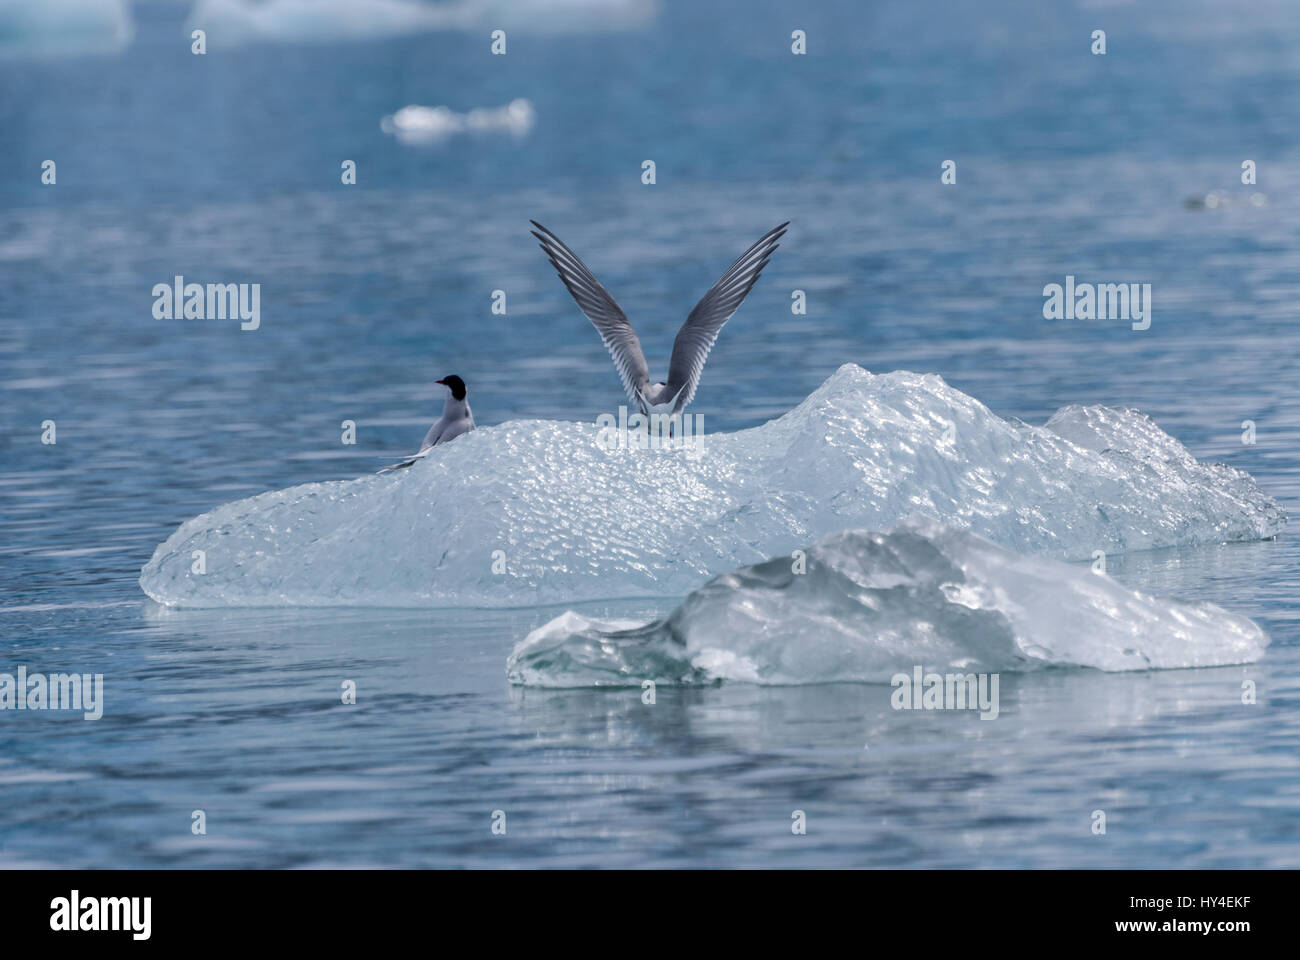 Two arctic terns  (Sterna paradisaea) perched on an iceberg in the inside passage of Alaska, USA. - Stock Image